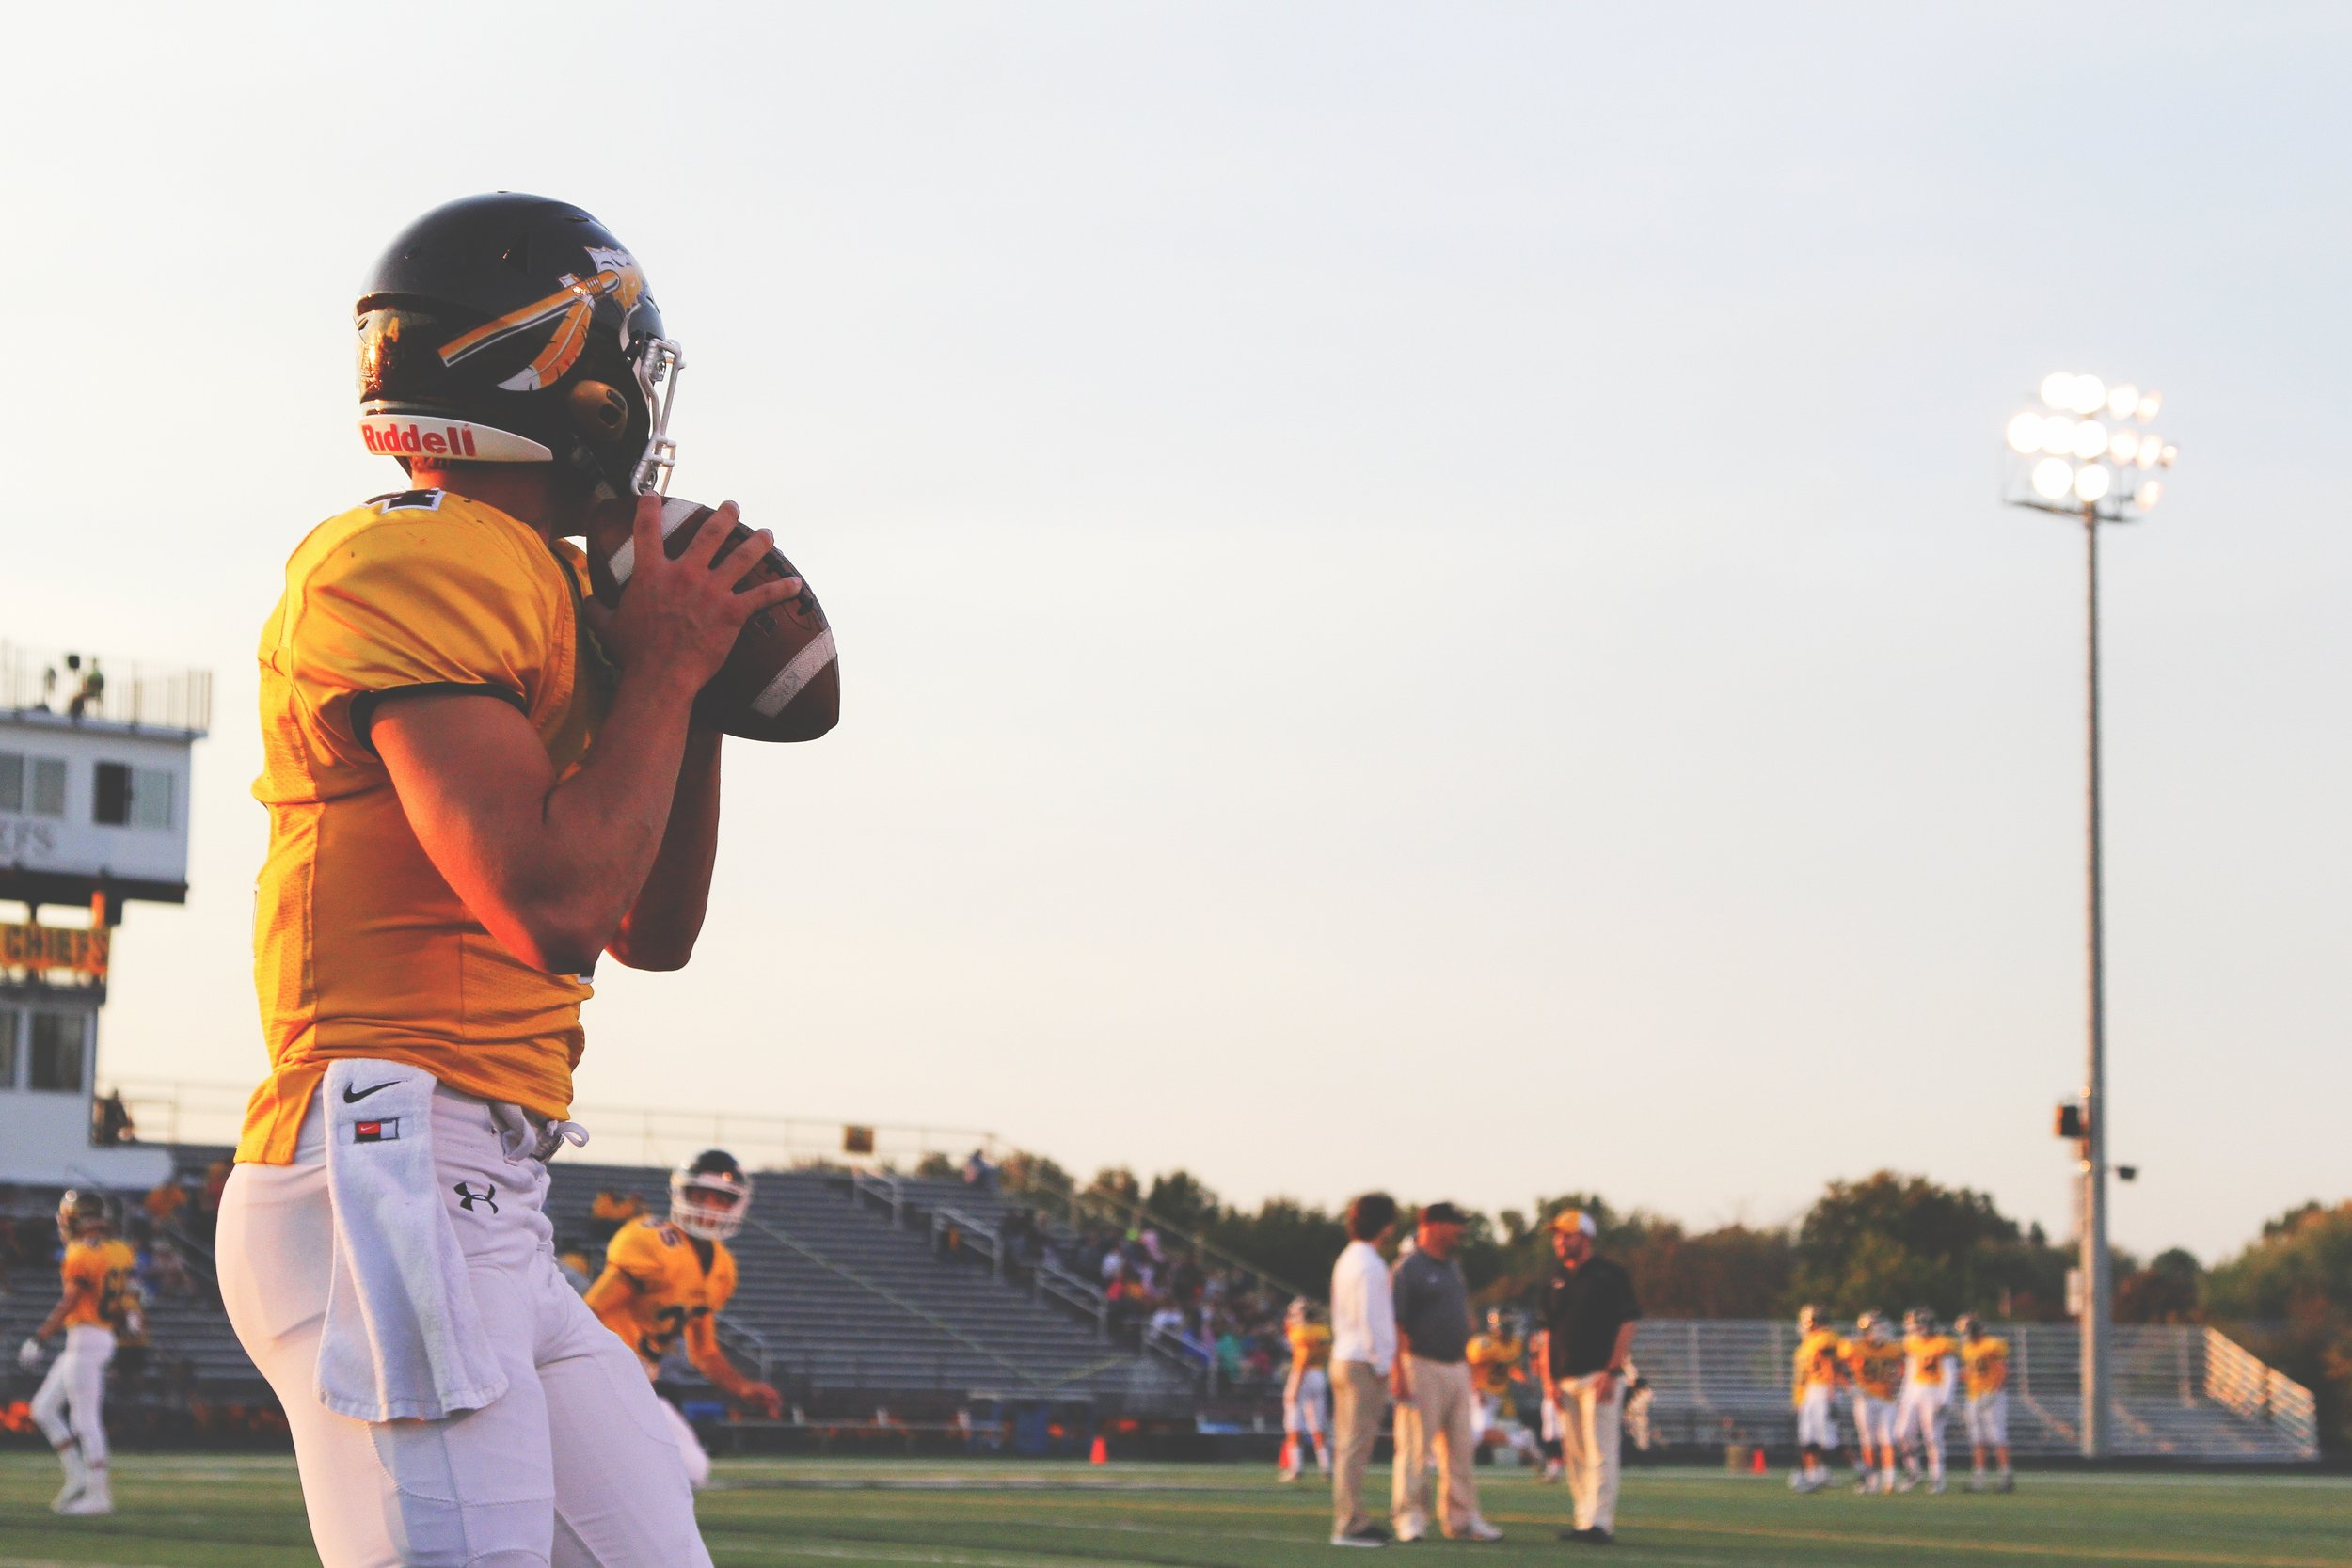 Quarterback - The Youth Academy